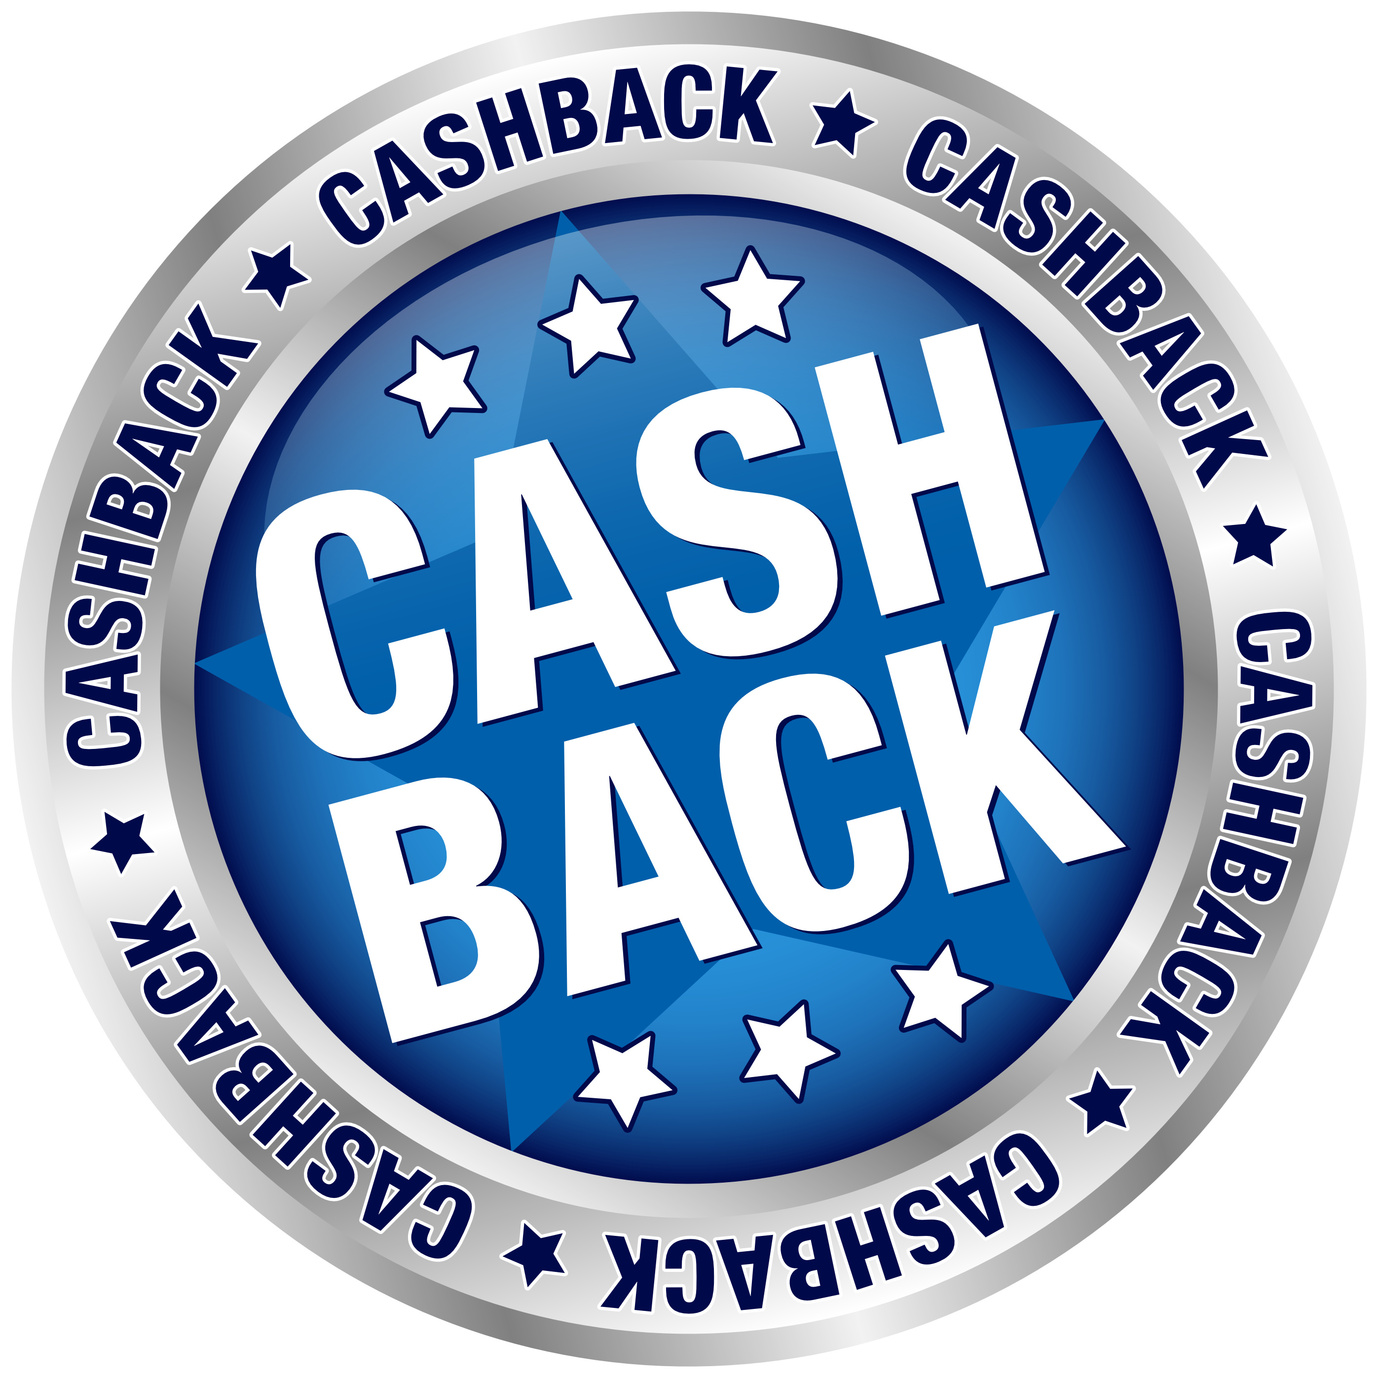 Cashback is that? The meaning of the term and the answers to the questions!